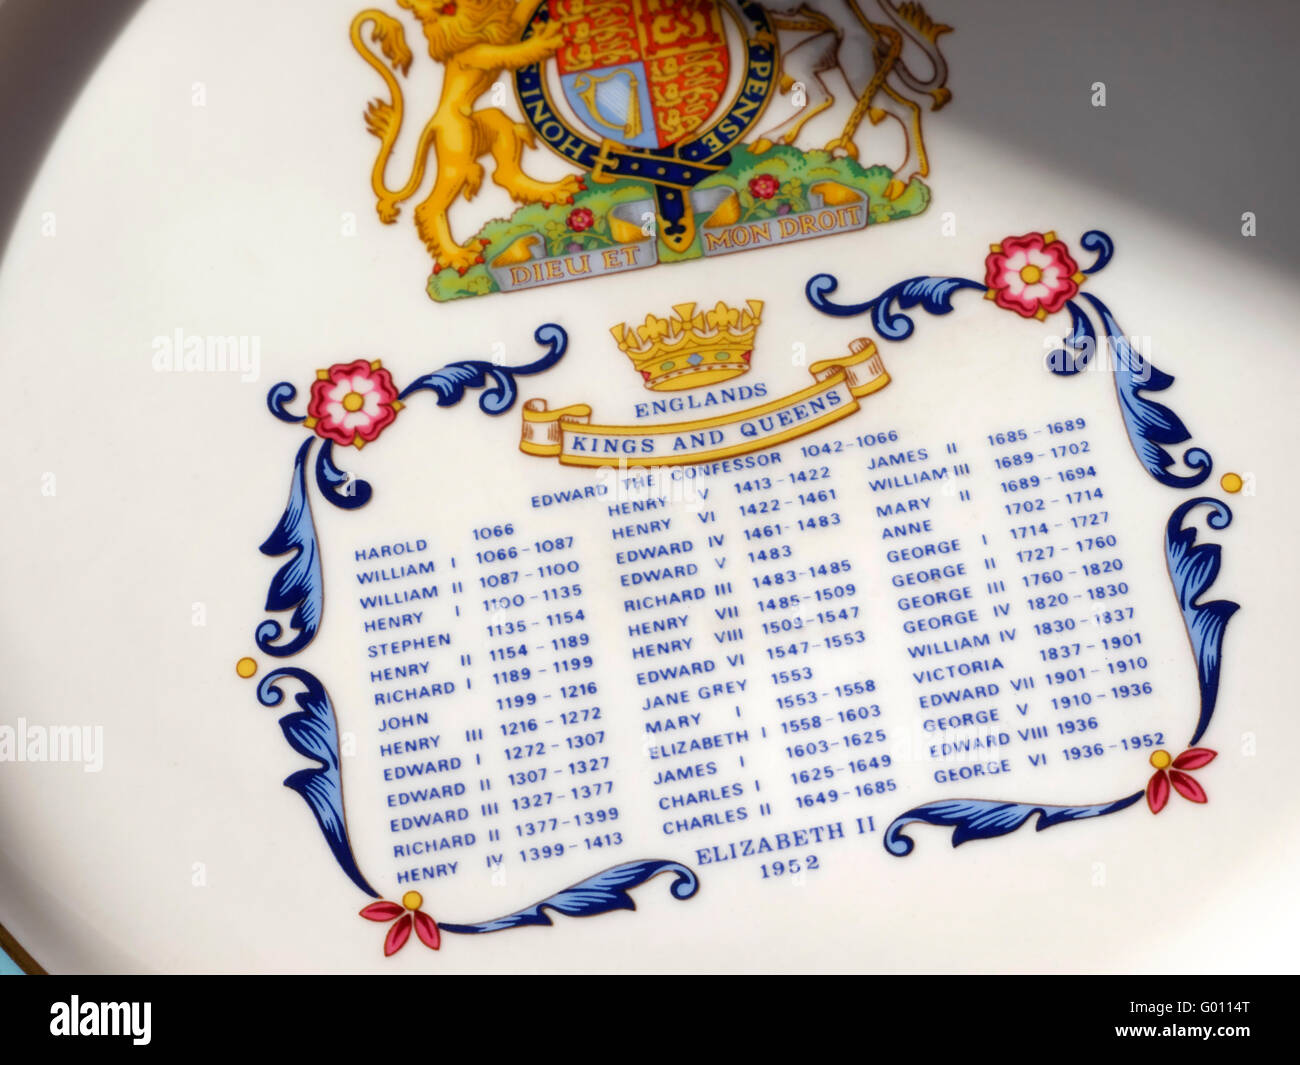 HM Queen Elizabeth 2nd commemorative plate with official coat of arms and list of all monarchs from 1066-1952 - Stock Image